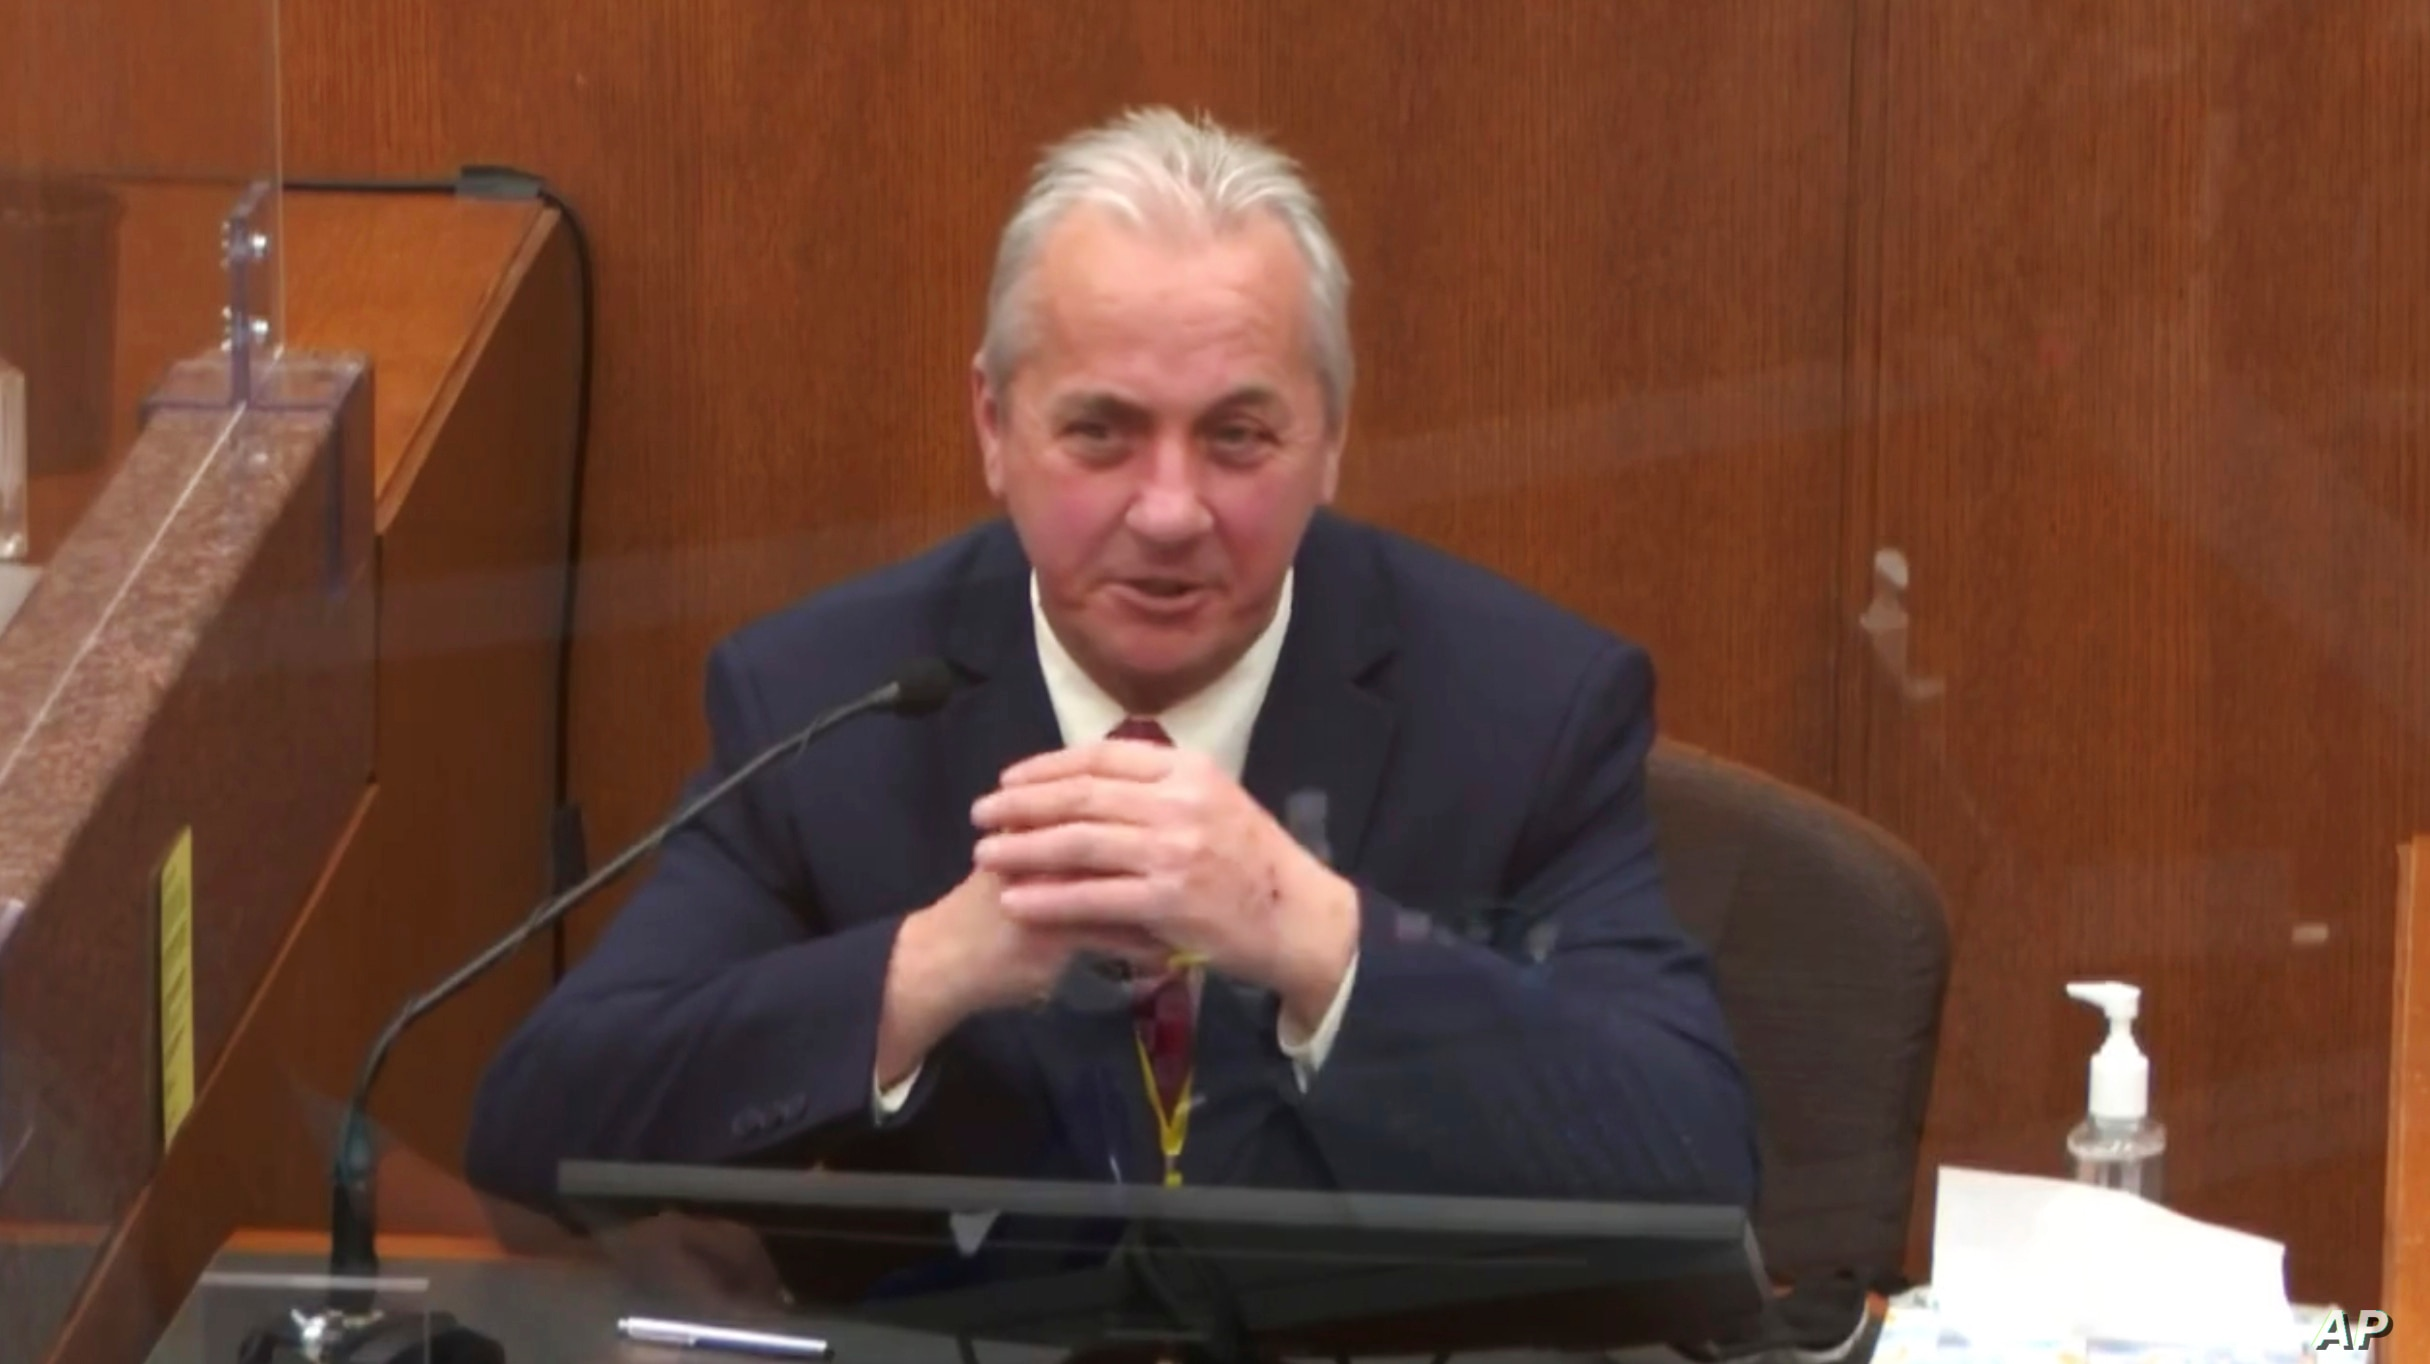 Derek Chauvin Defended Kneeling On George Floyd In Phone Call With Supervisor